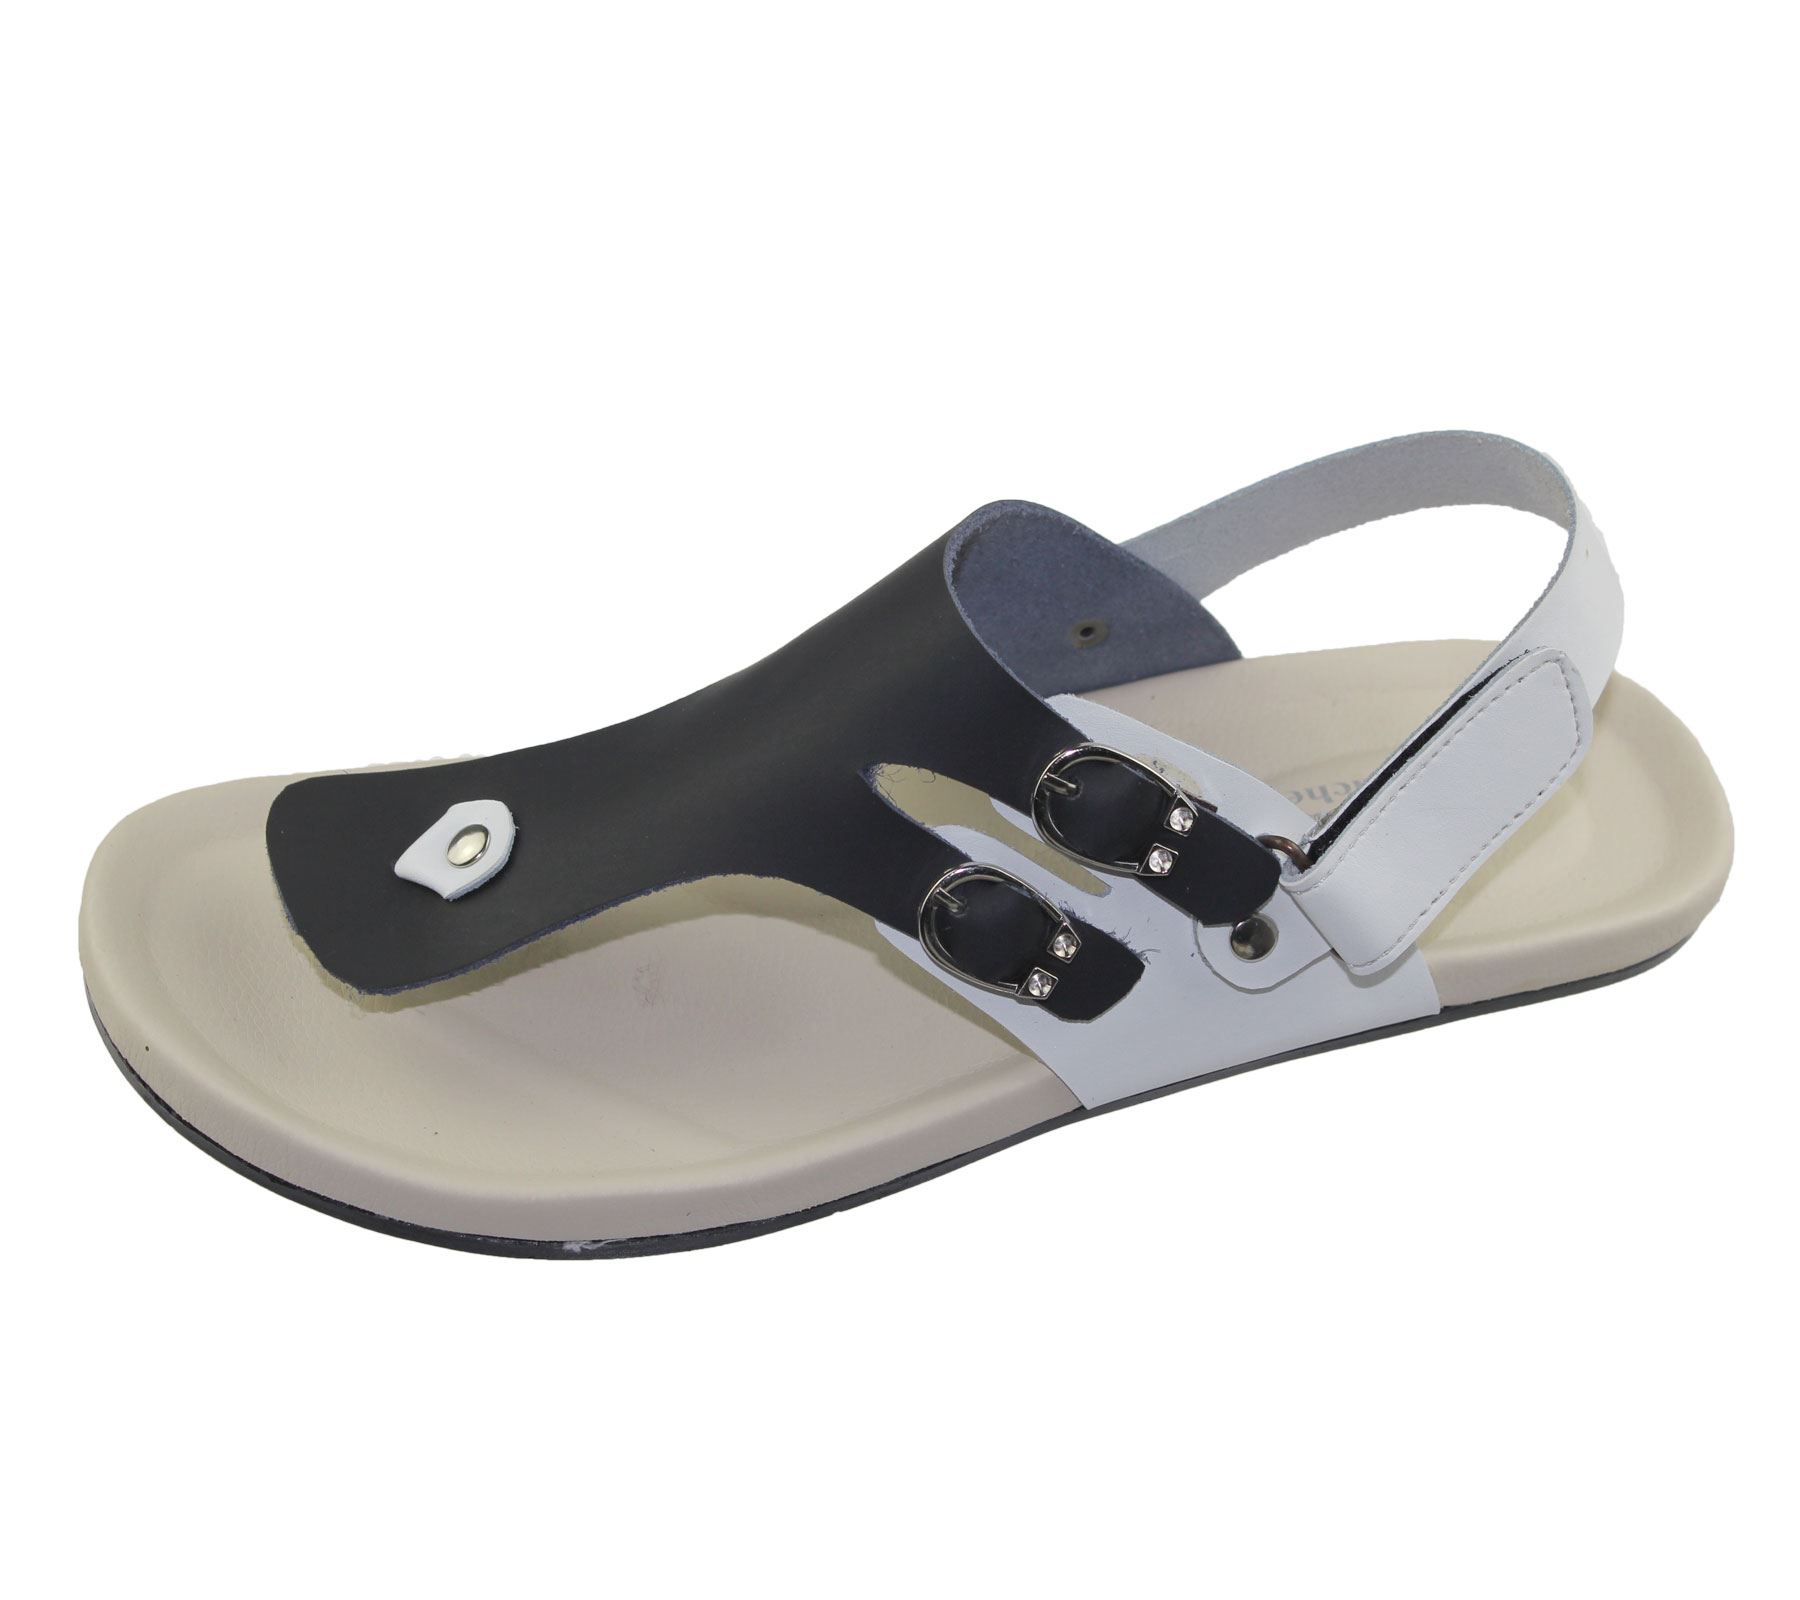 4616f0f64f3d Mens Sandals Casual Beach Fashion Boys Walking Slipper Flip Flop ...